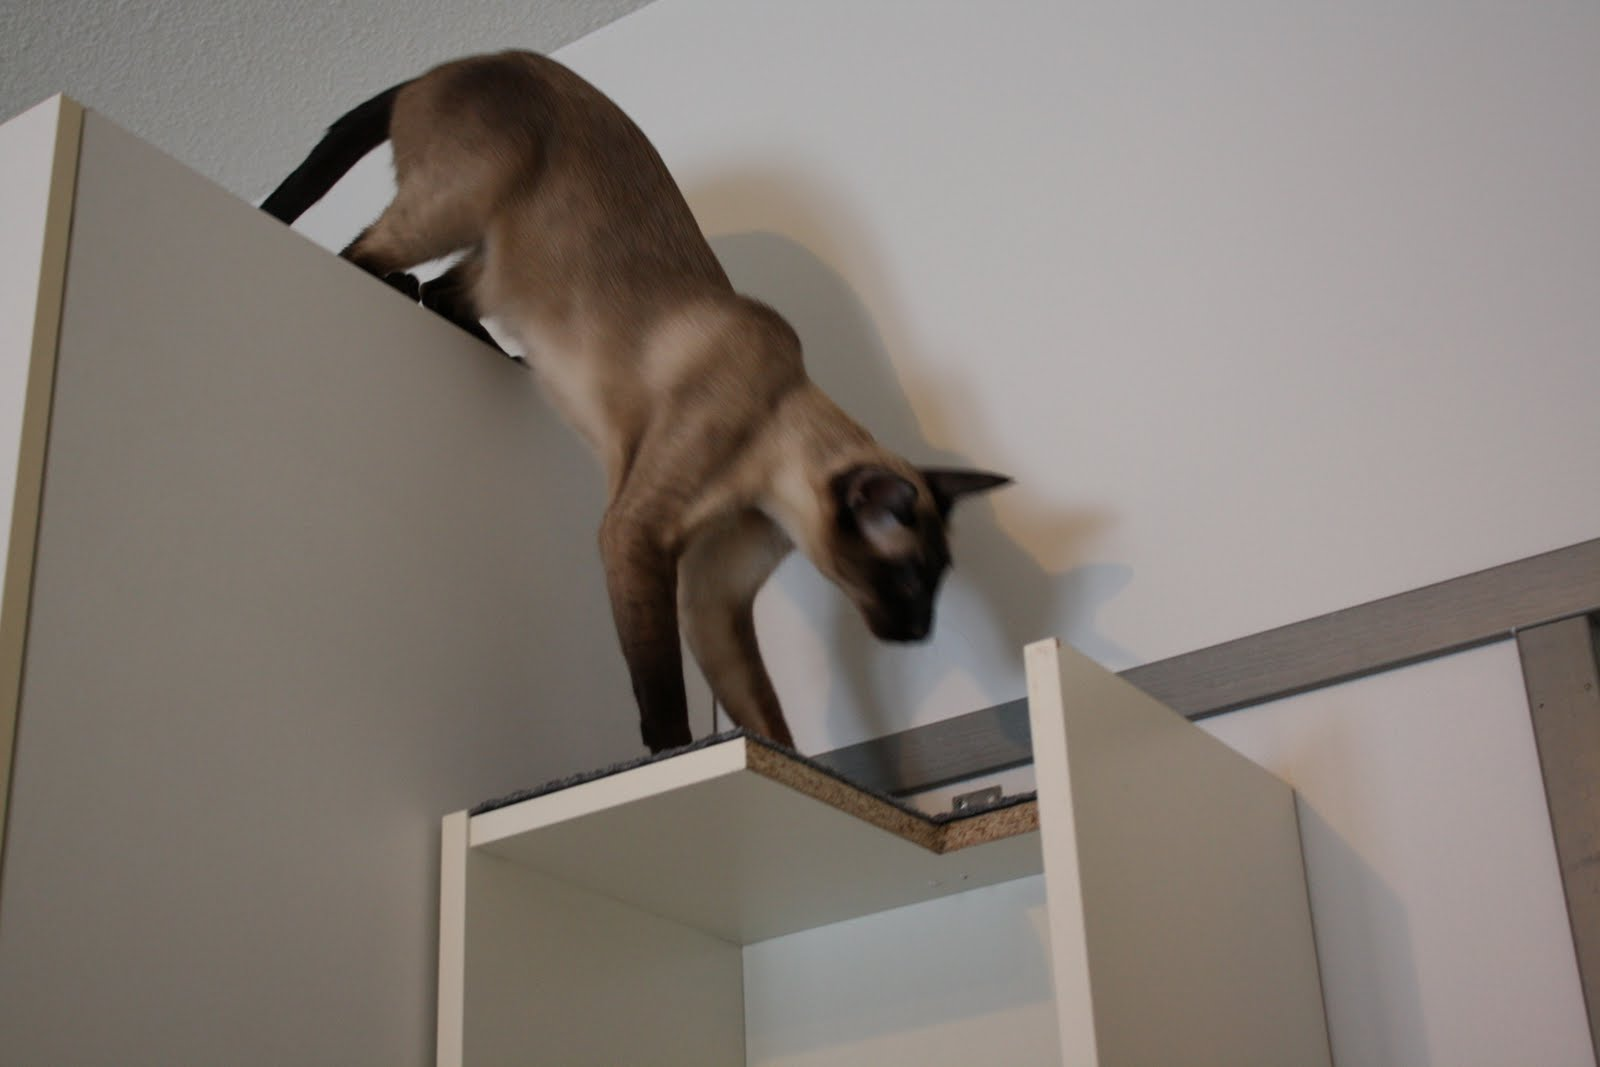 Cat climbing shelf in one compact Billy